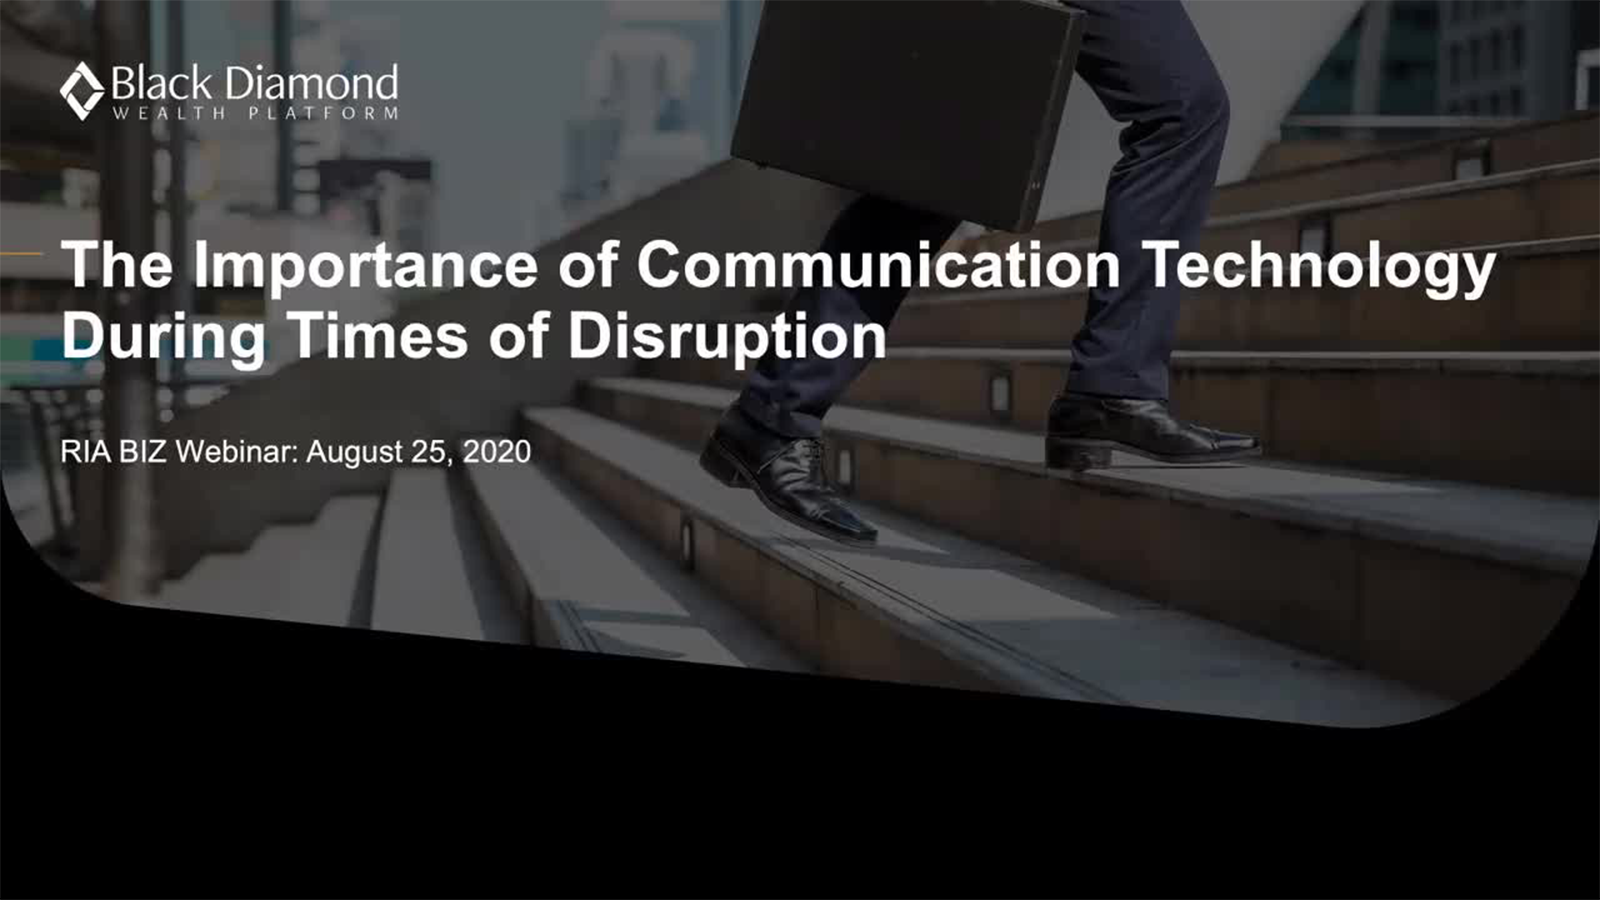 poster image for Black Diamond Wealth Platform: The Importance of Communication Technology During Times of Disruption